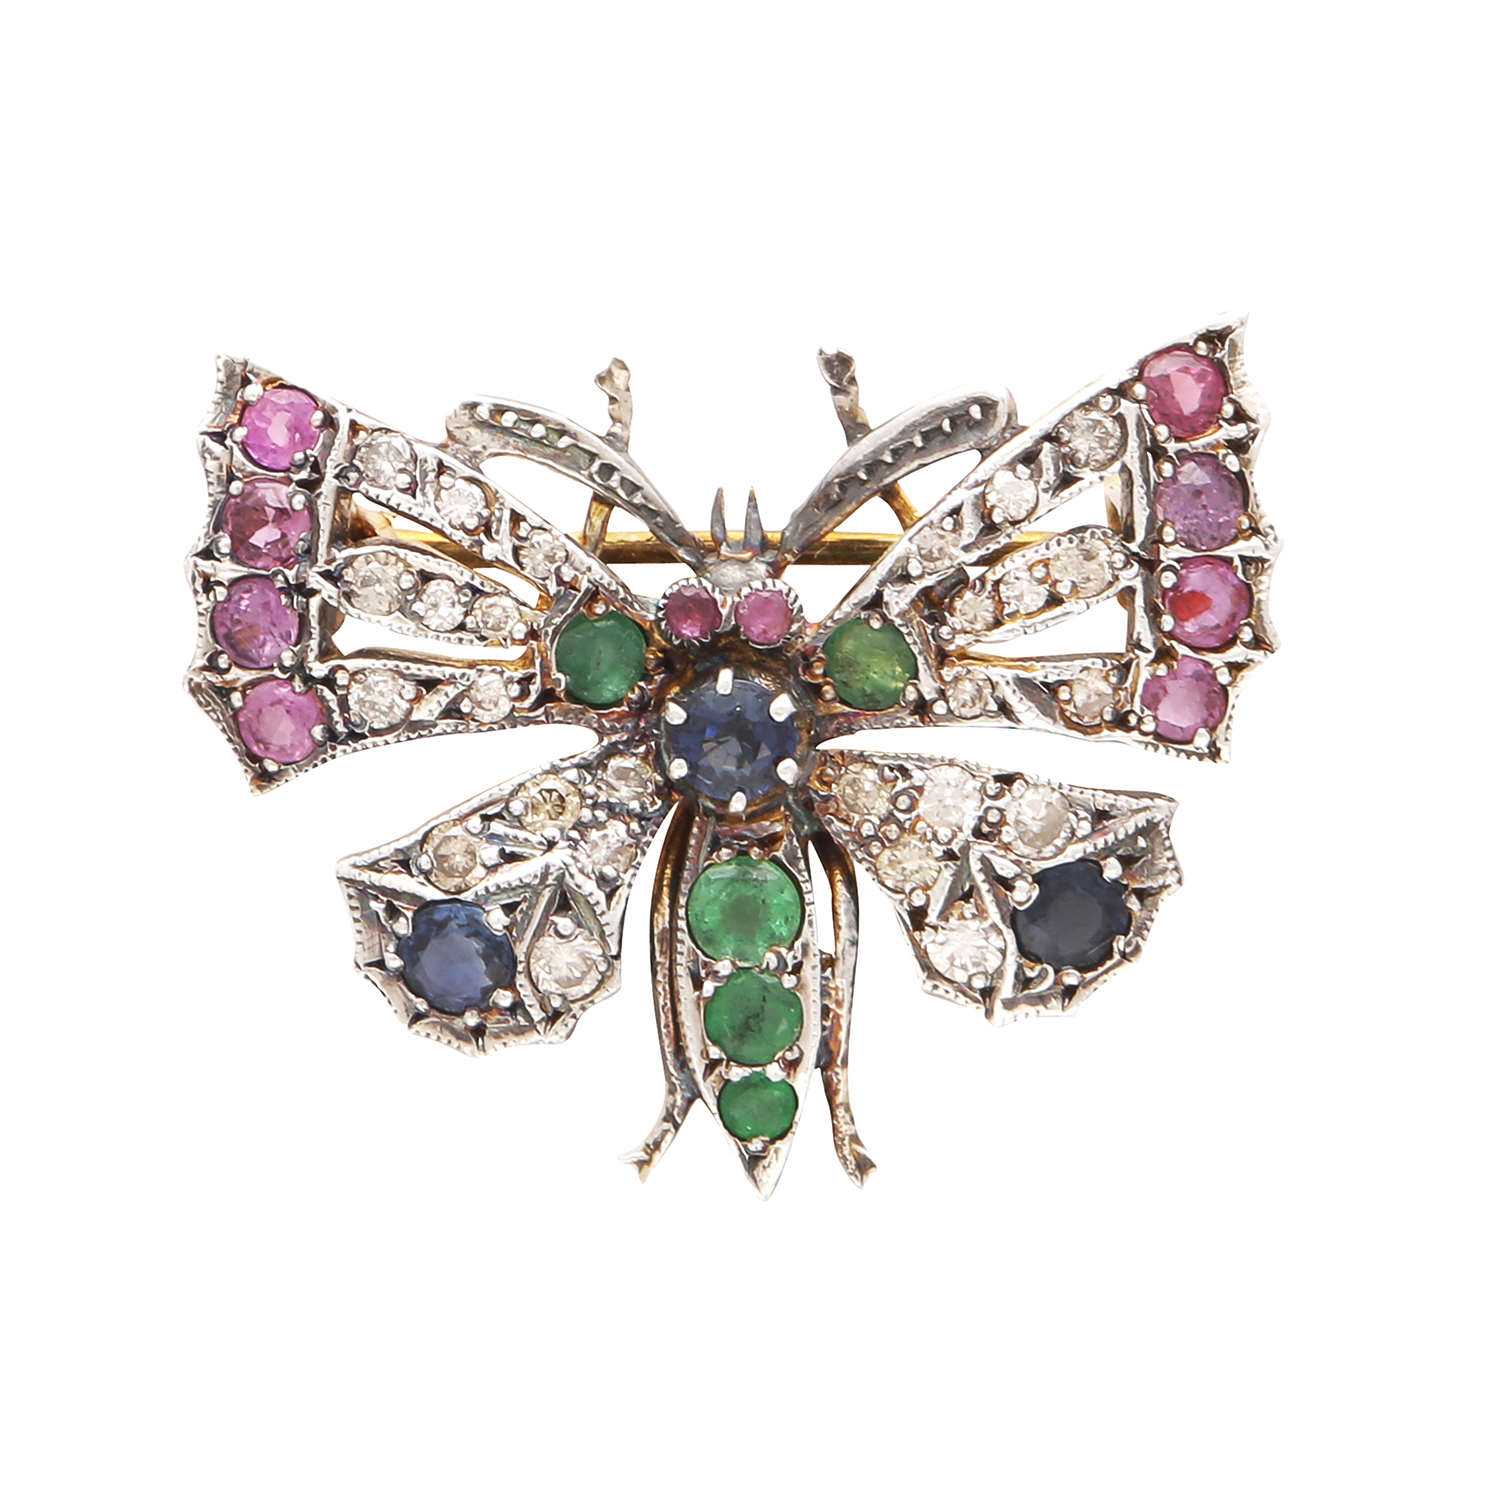 Los 27 - A RUBY, EMERALD, SAPPHIRE AND DIAMOND BUTTERFLY BROOCH in yellow gold and silver designed as a